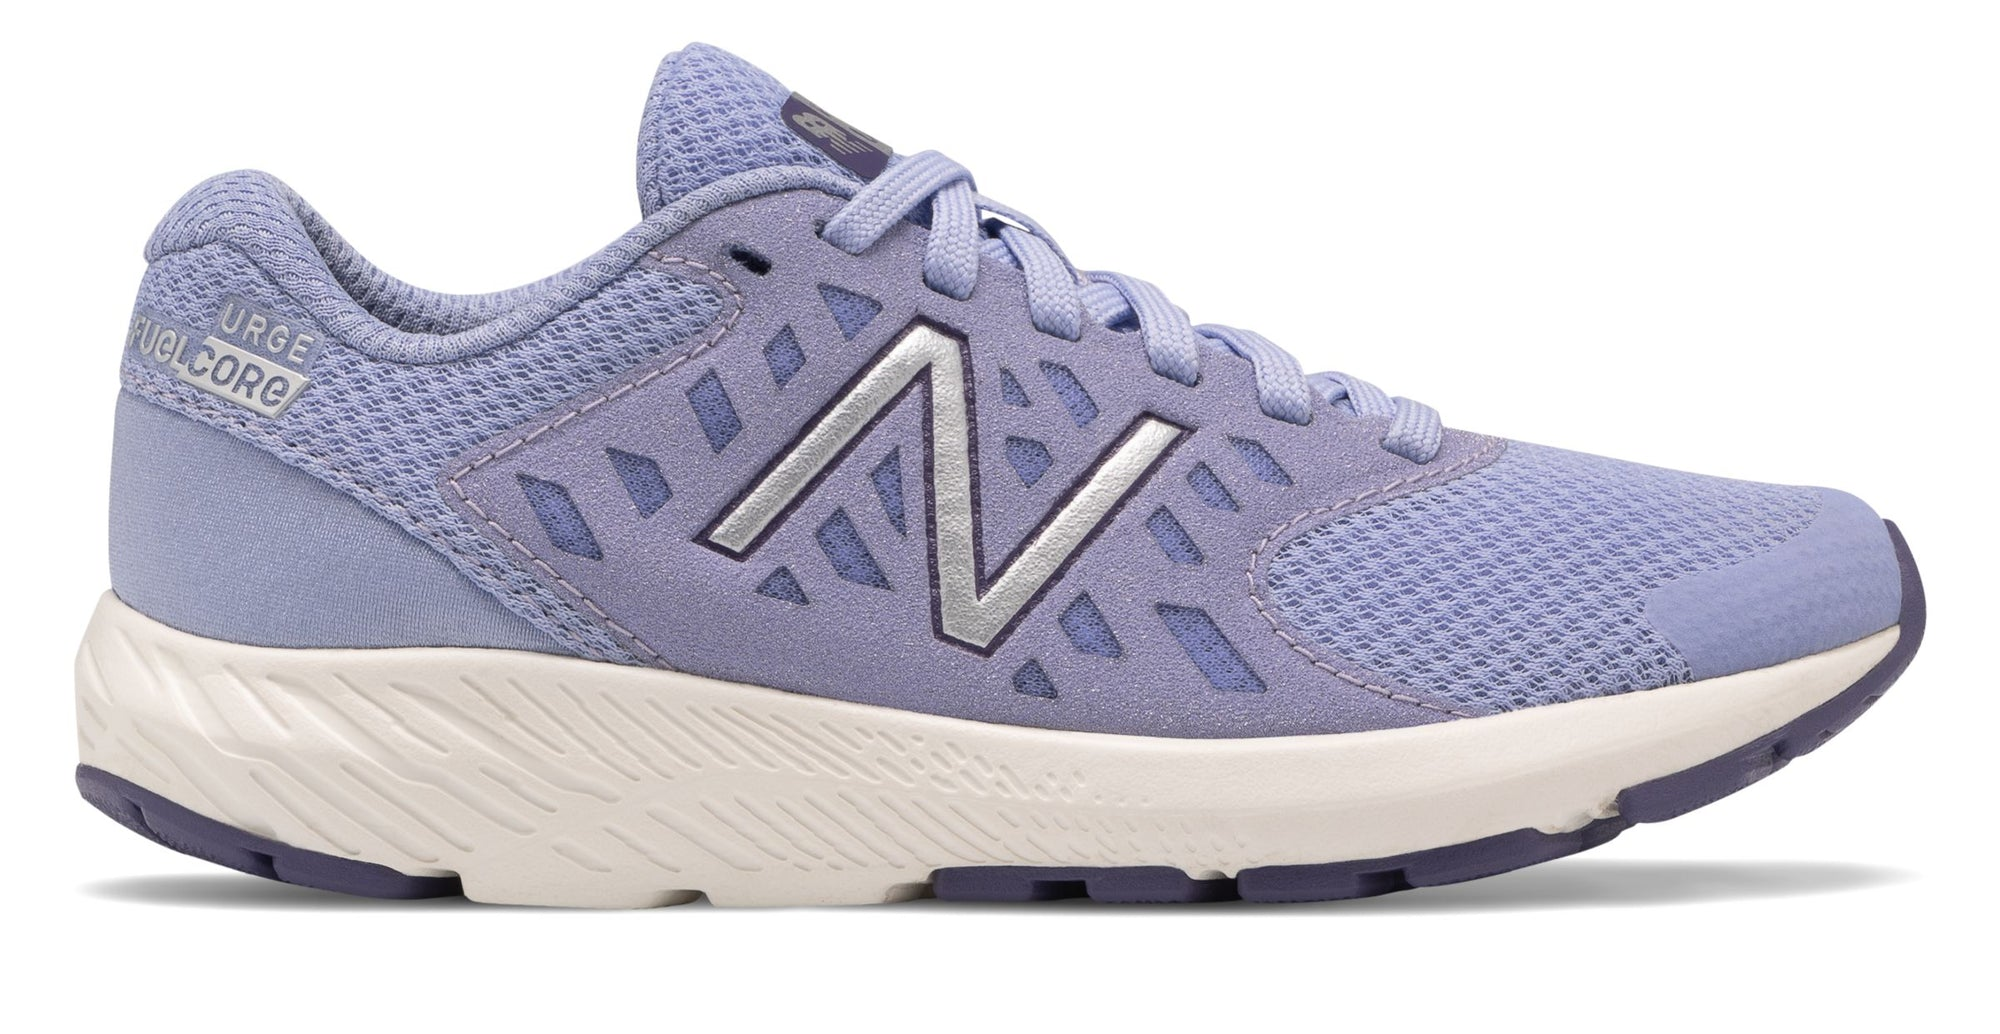 FuelCore Urge - Amethyst / Violet by New Balance - Ponseti's Shoes